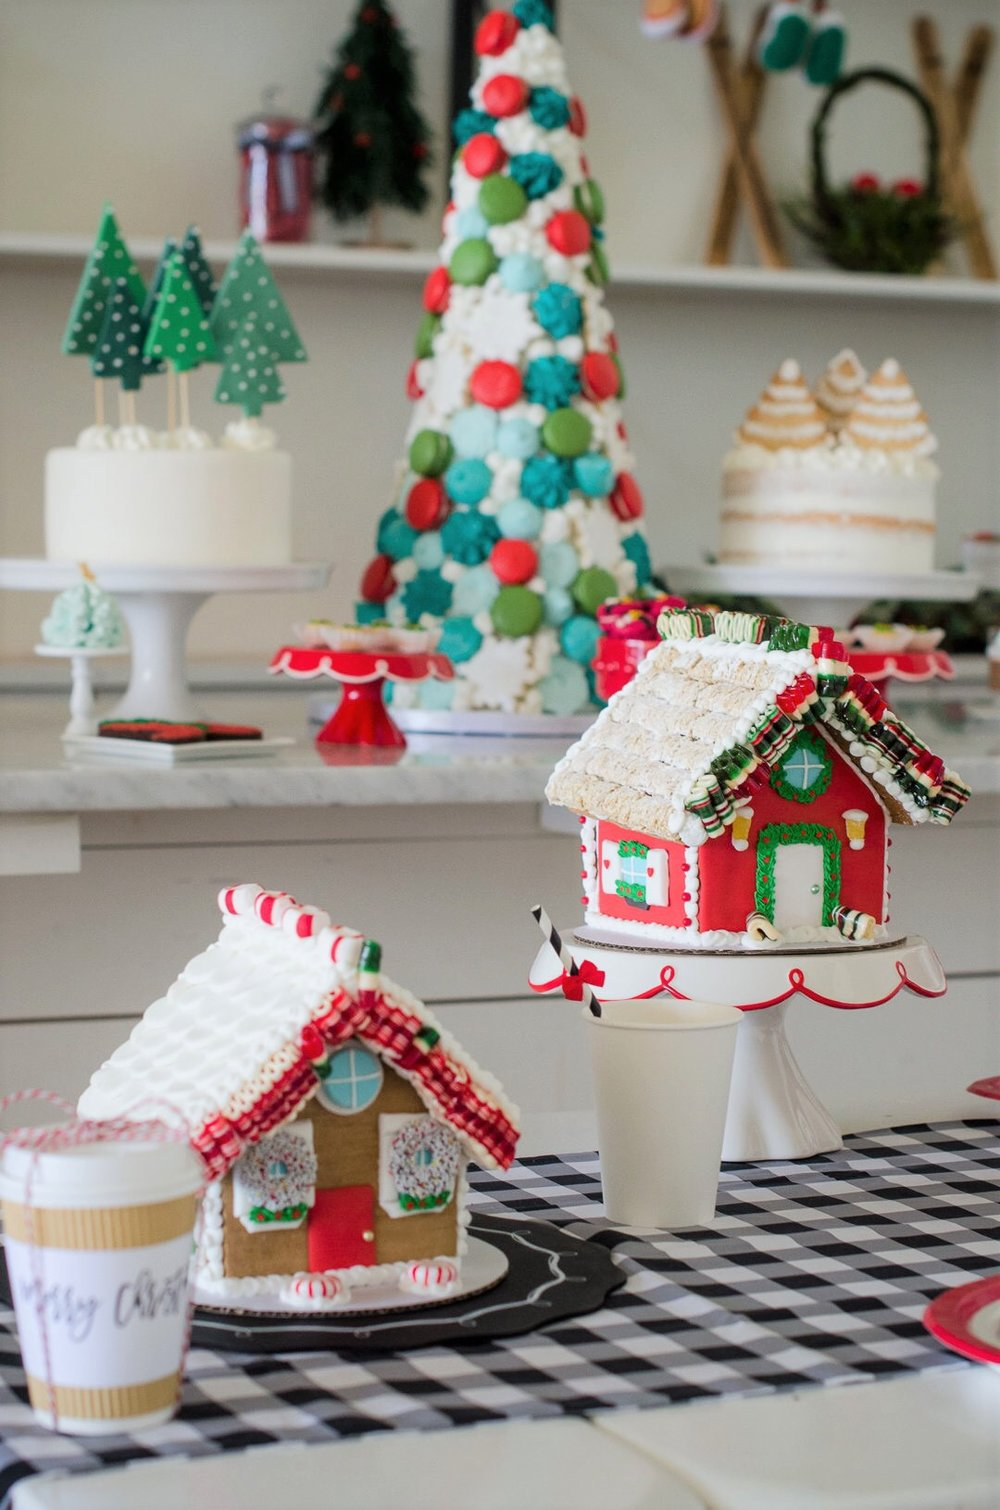 Now these are Gingerbread house goals! This holiday party is so beautiful! See more holiday party inspiration from Austin based party stylist Mint Event Design at www.minteventdesign.com #desserttable #christmasdesserts #holidayparty #holidays #partyideas #christmasparty #holidaypartyideas #gingerbreadhouses